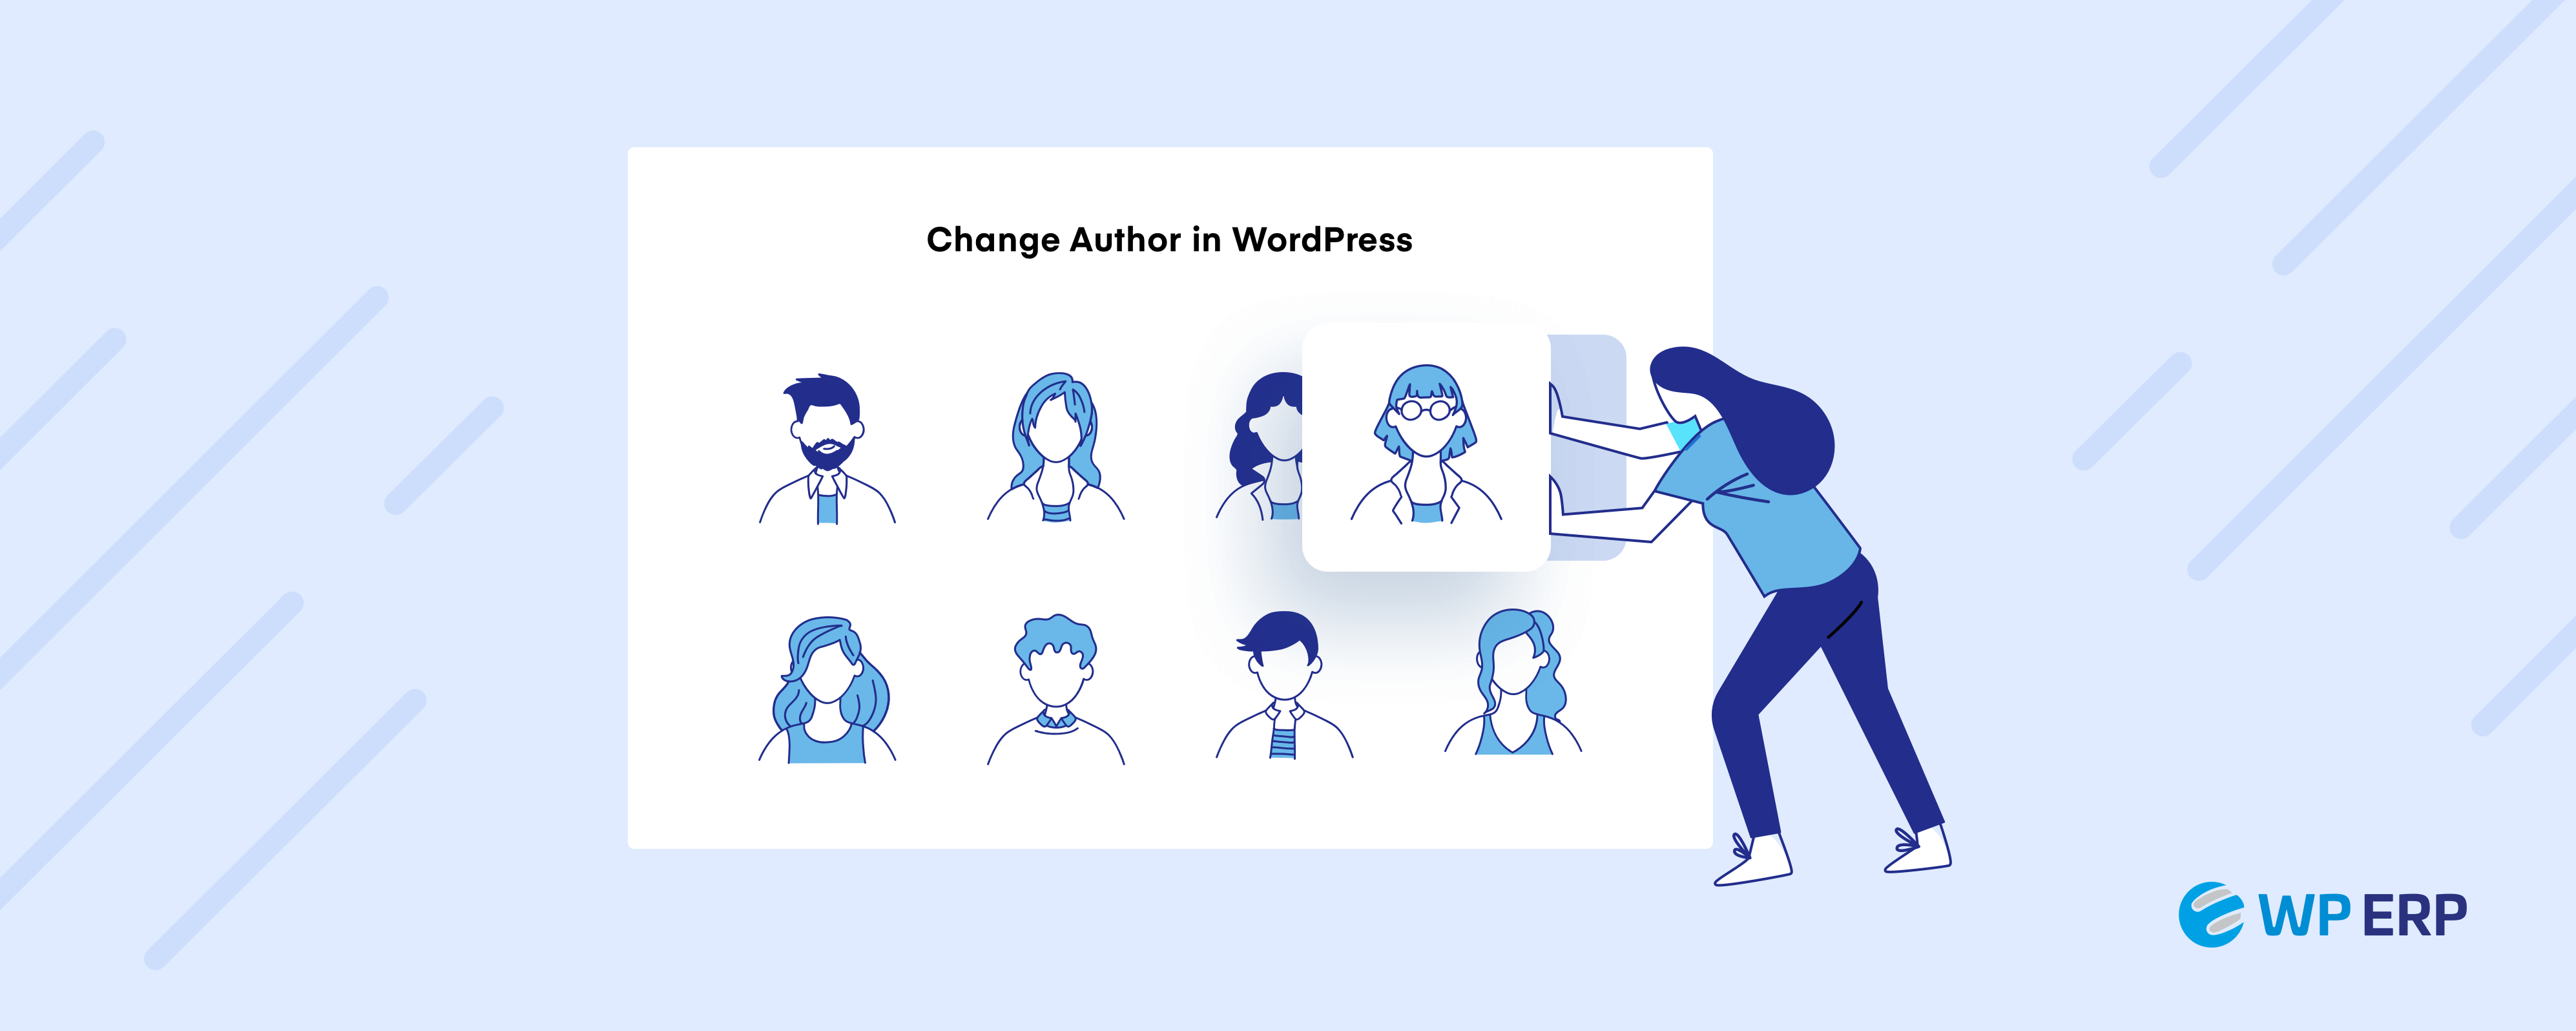 How to change author in WordPress